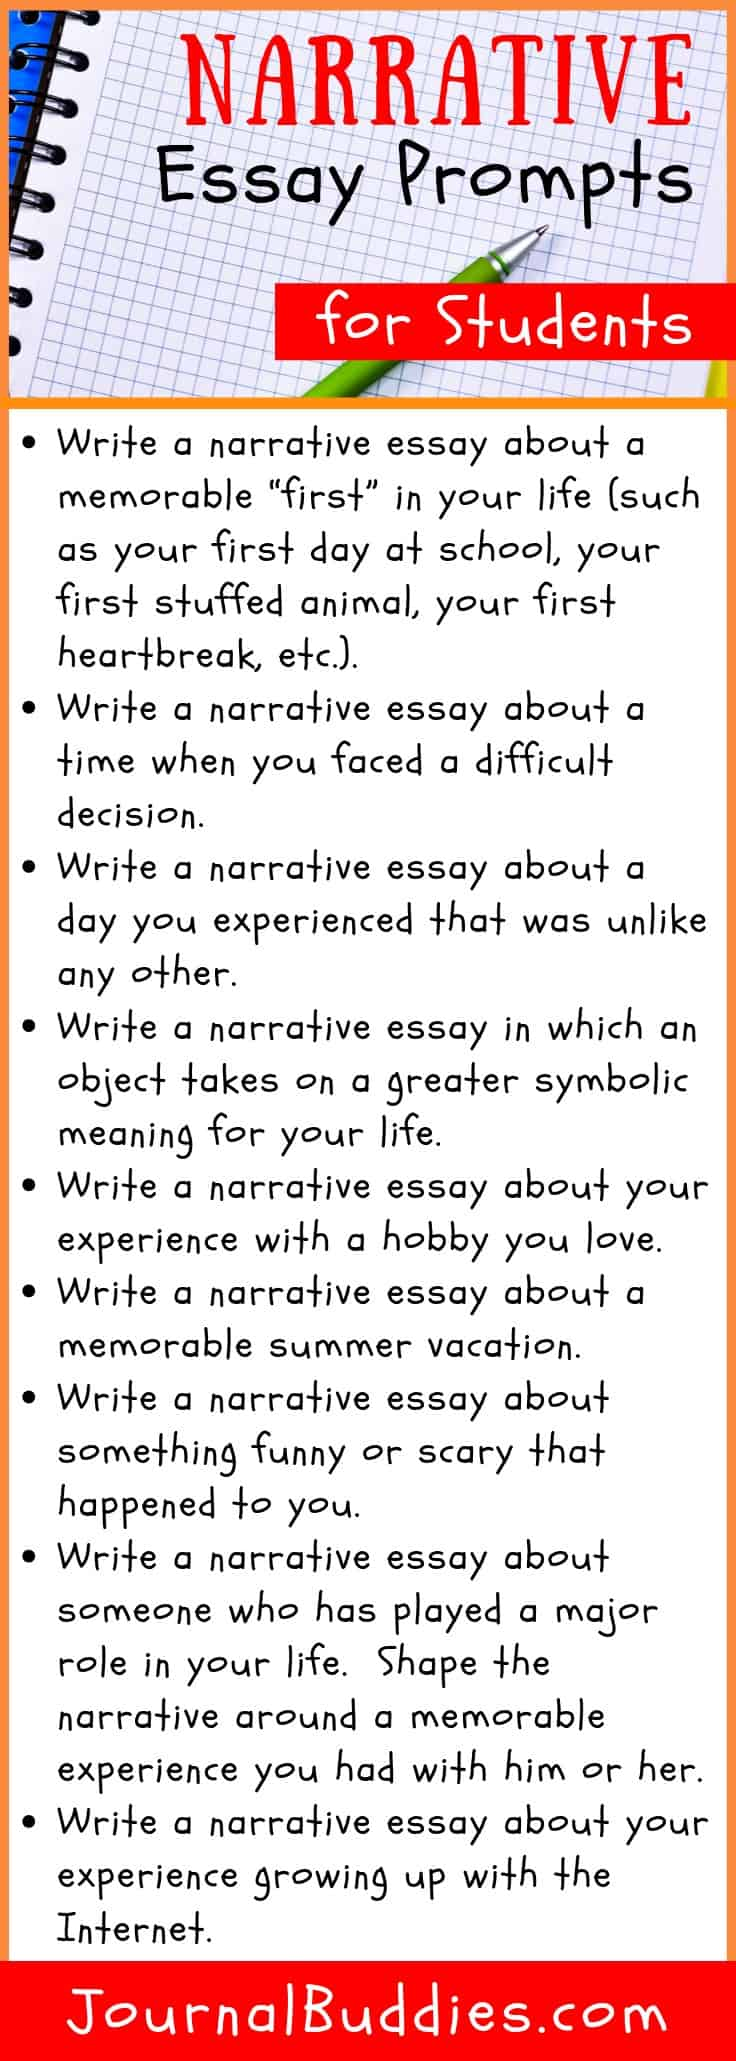 77 Best Topic Ideas For Narrative Essay - blogger.com